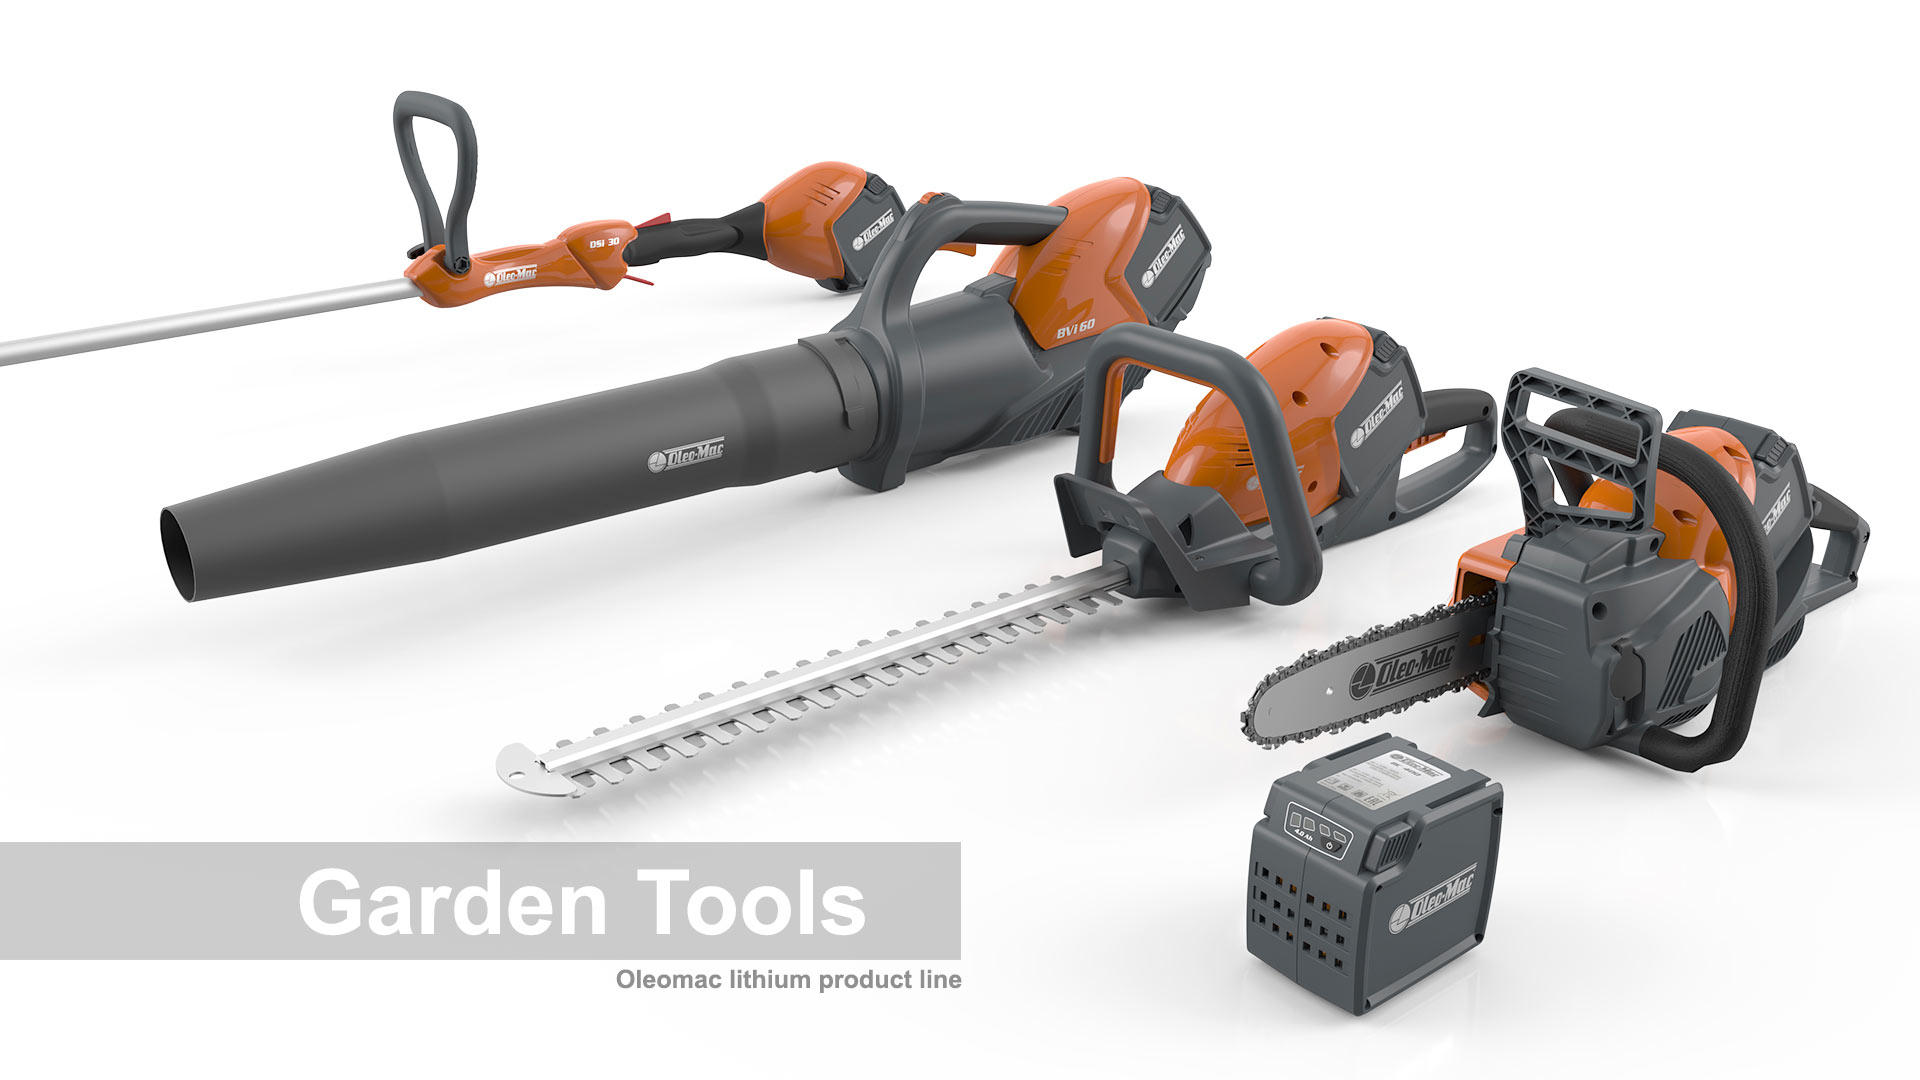 AMV Design Oleo-Mac electrical gardening tools